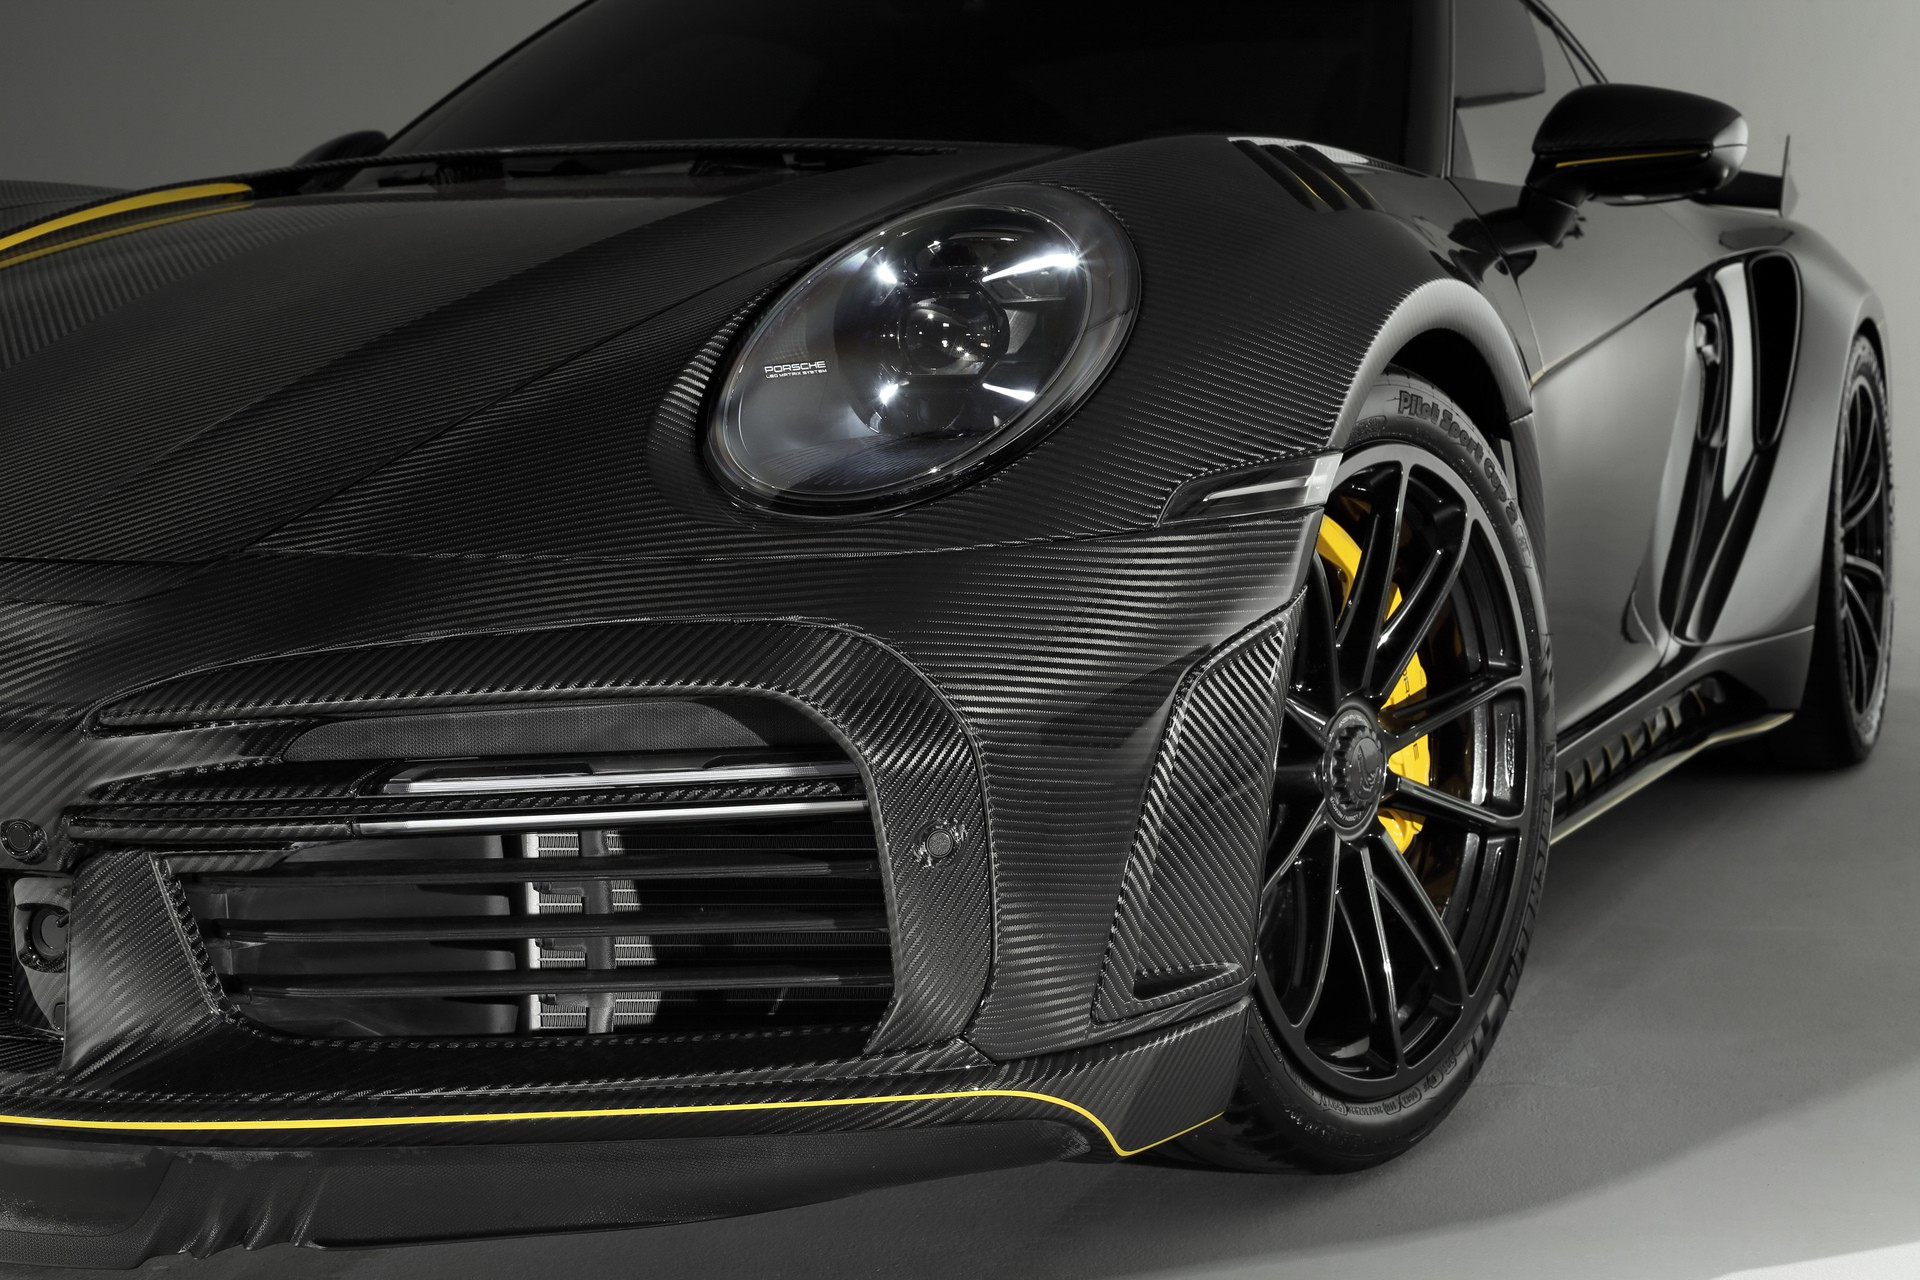 Russian tuner TopCar will be building only 13 such Porsche 911 (992) Stinger GTR Limited Carbon Edition, promising the utmost exclusivity. But is the styling package worth a six-digit amount in euros for you?